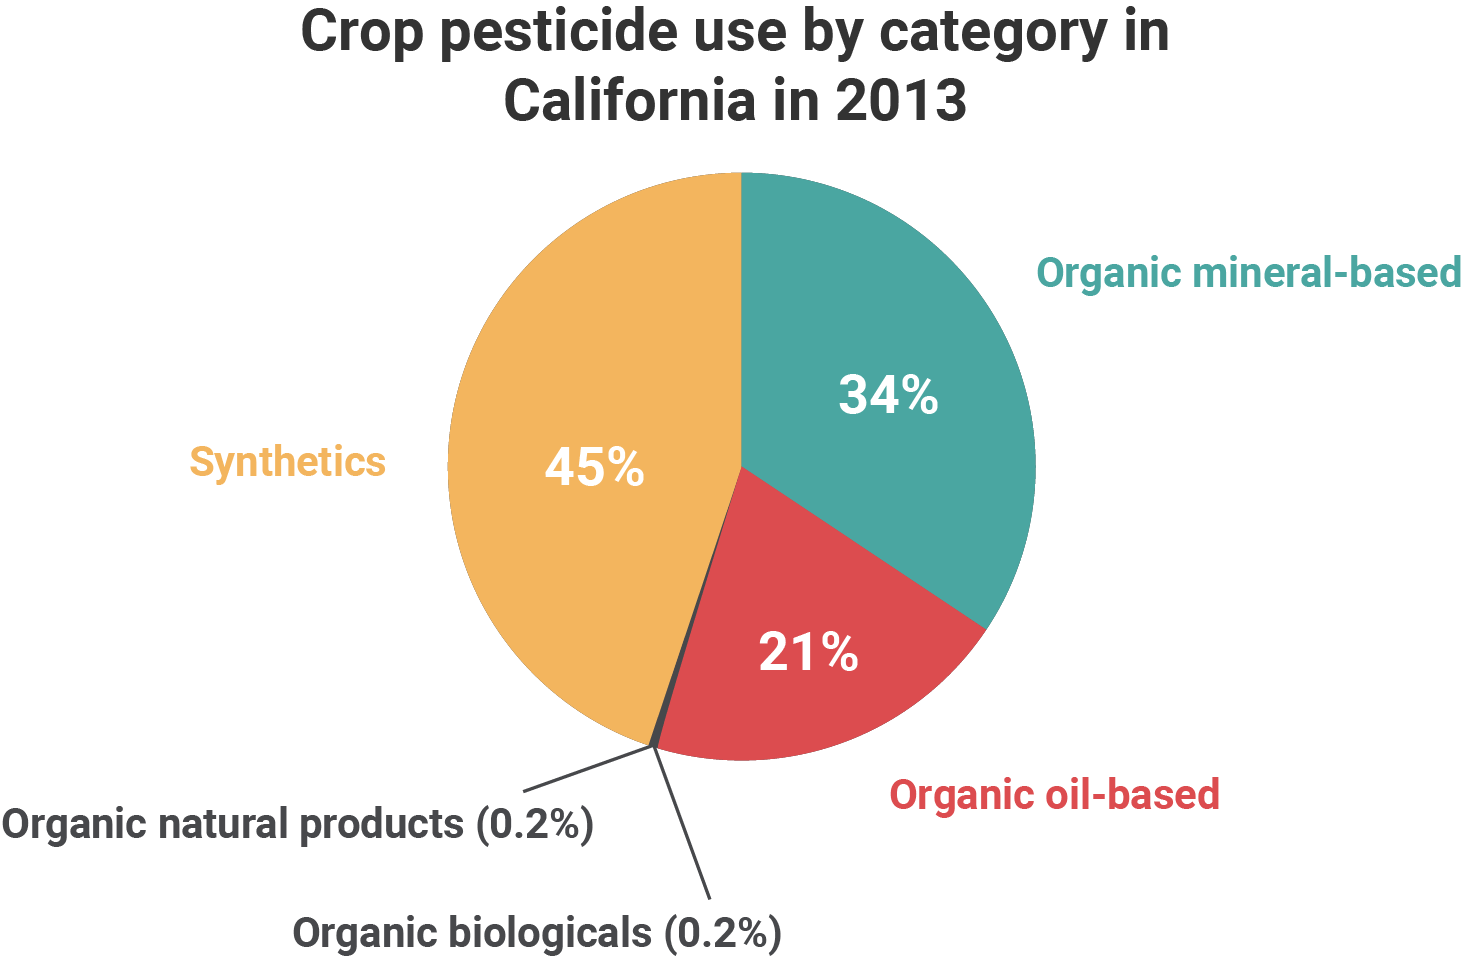 A graph showing the percentage of pesticides used in 2013 in California by category (synthetics, organic mineral-based, organic oil-based, organic natural products, and organic biologicals).